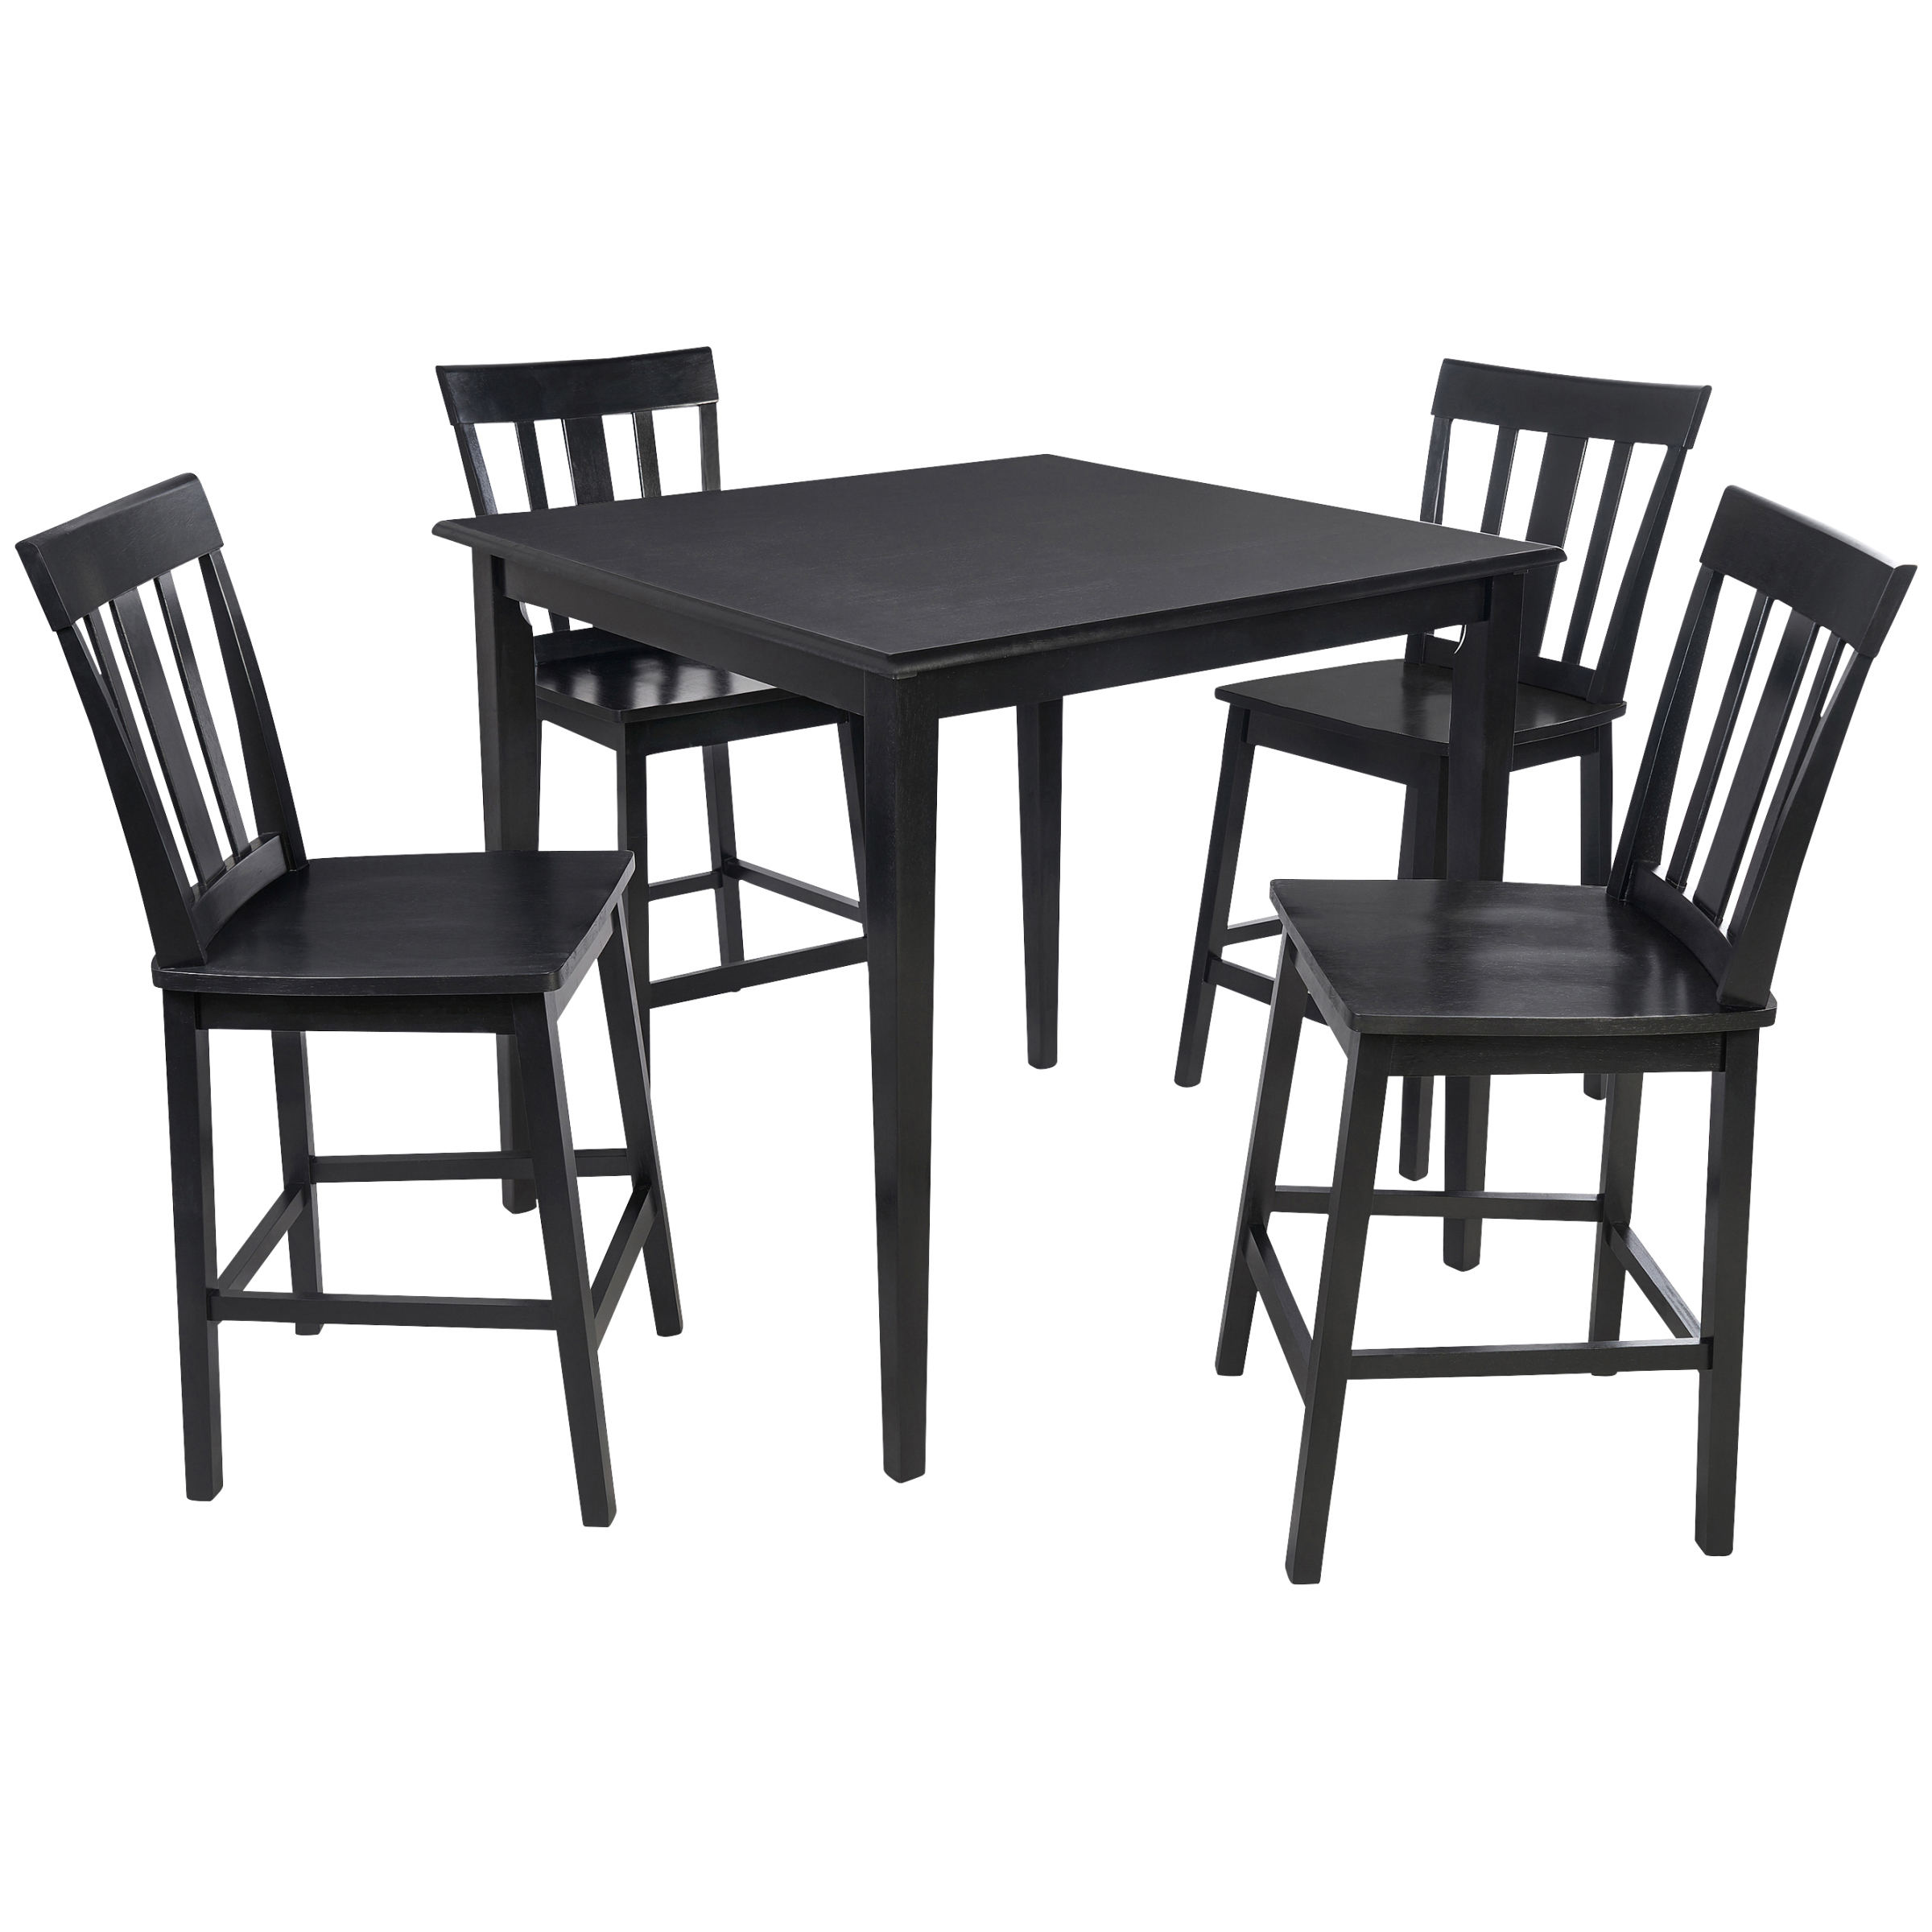 Mainstays 5-Piece Dining Set, Black